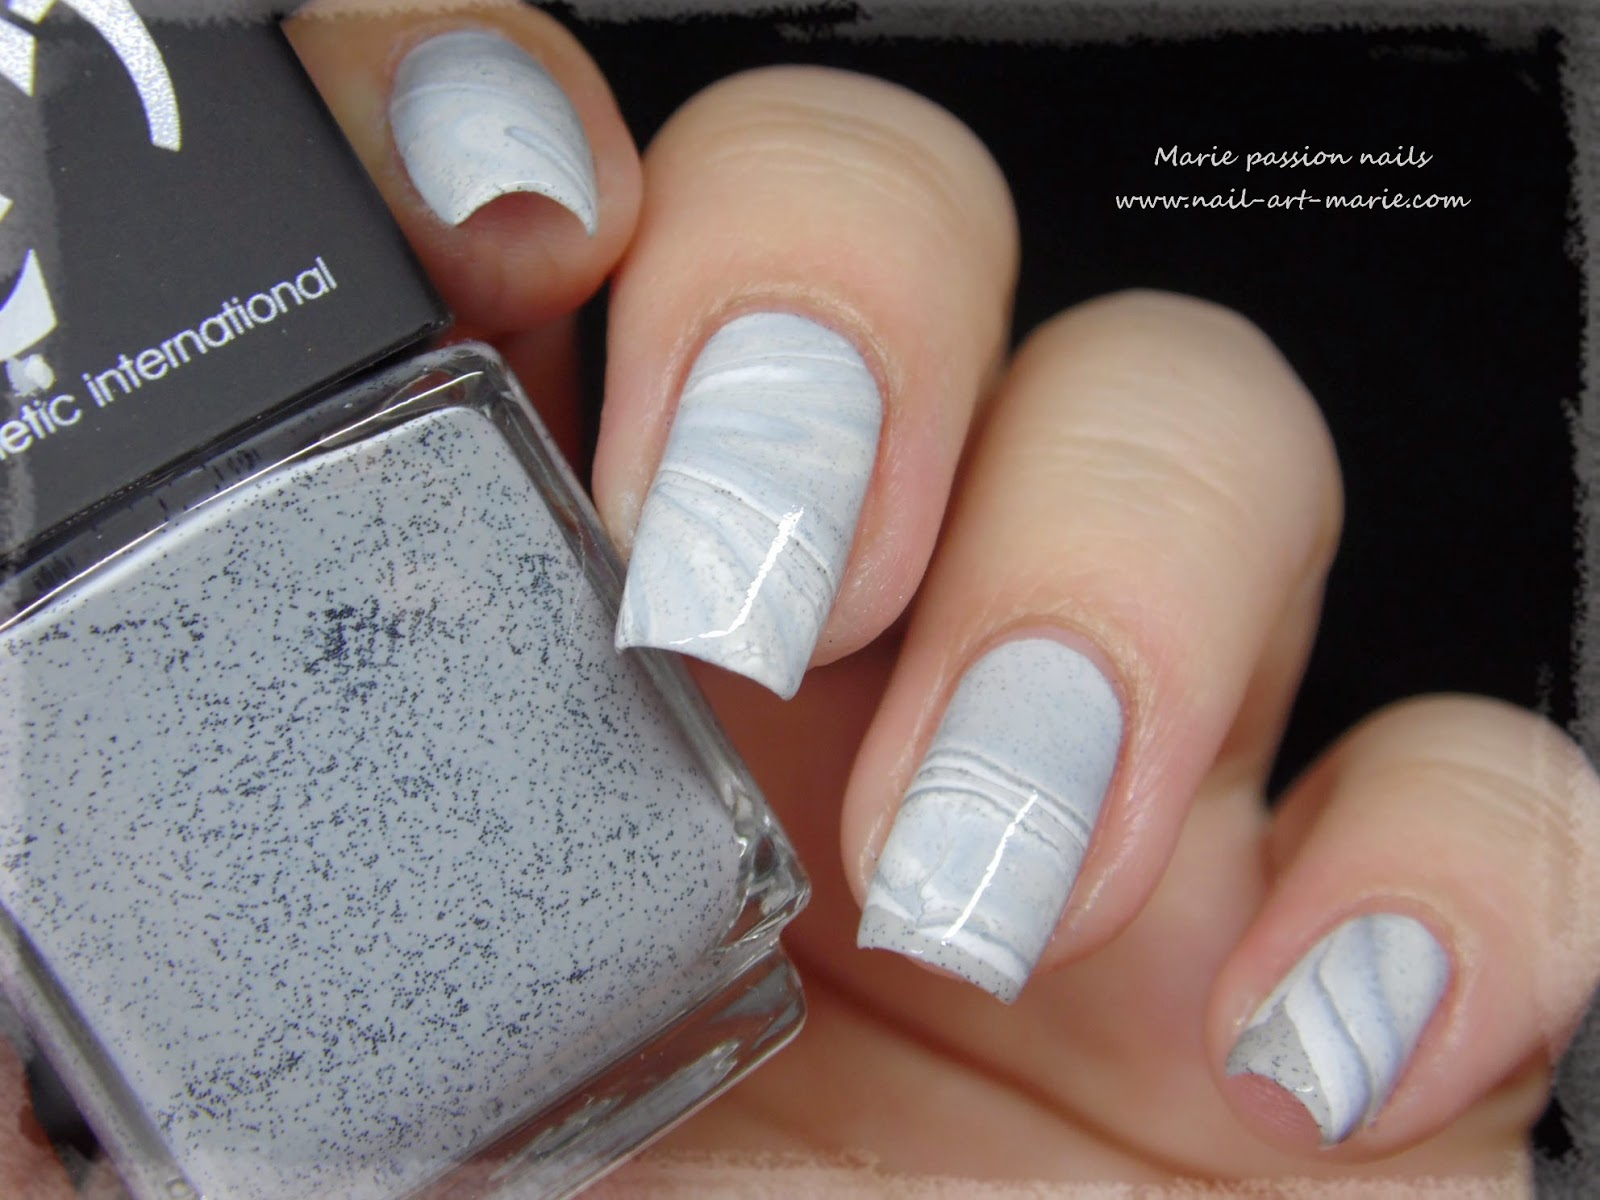 Nail Art effet Marbe au Water Marble6